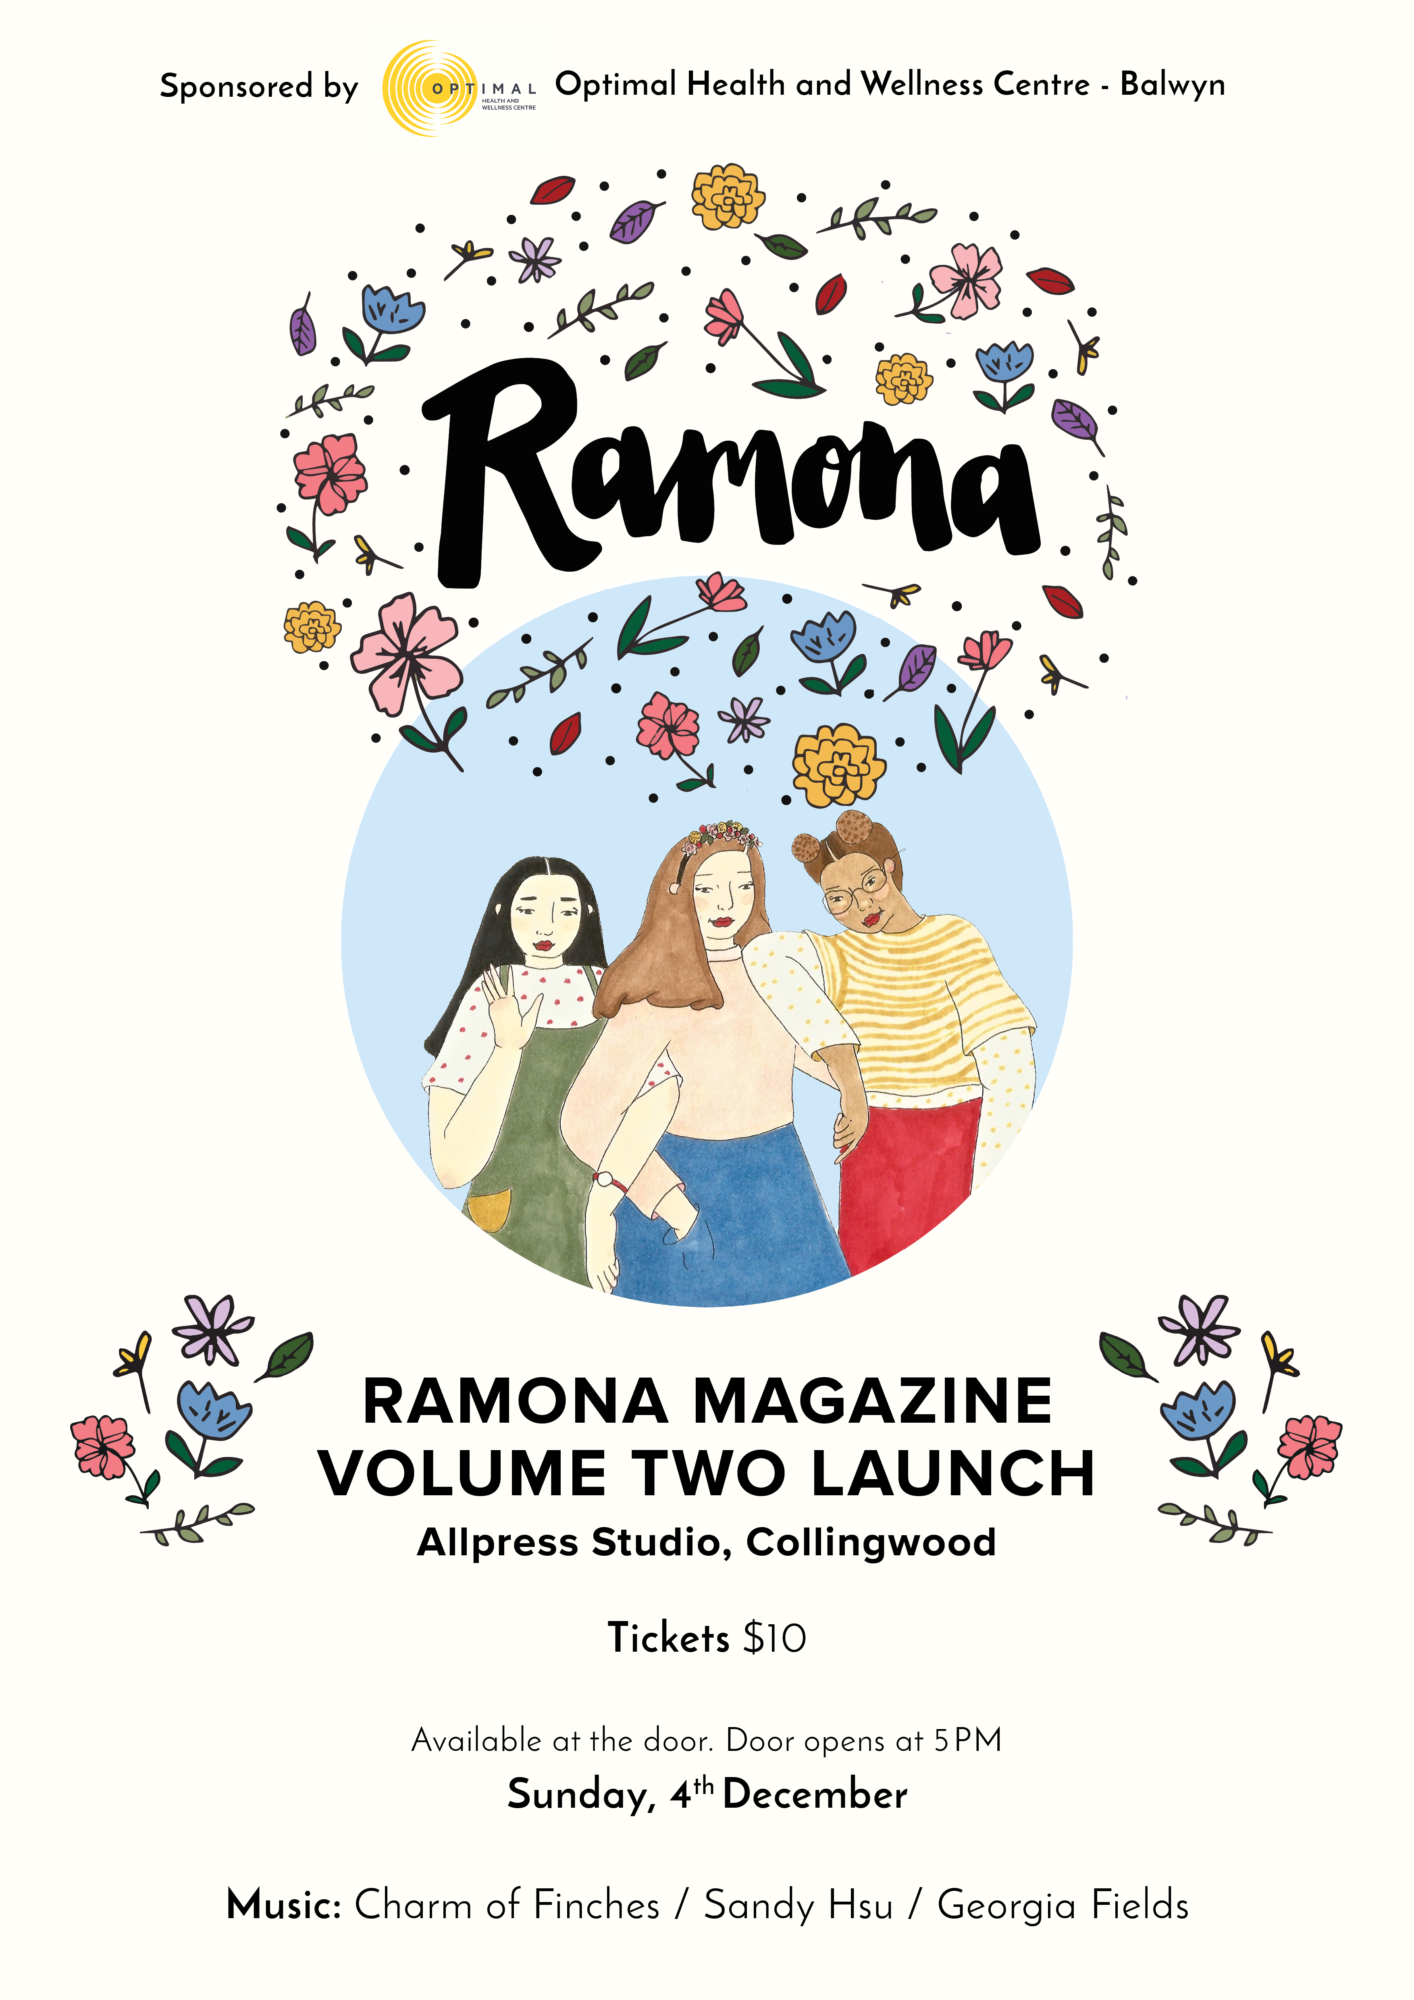 Ramona Volume Two Launch